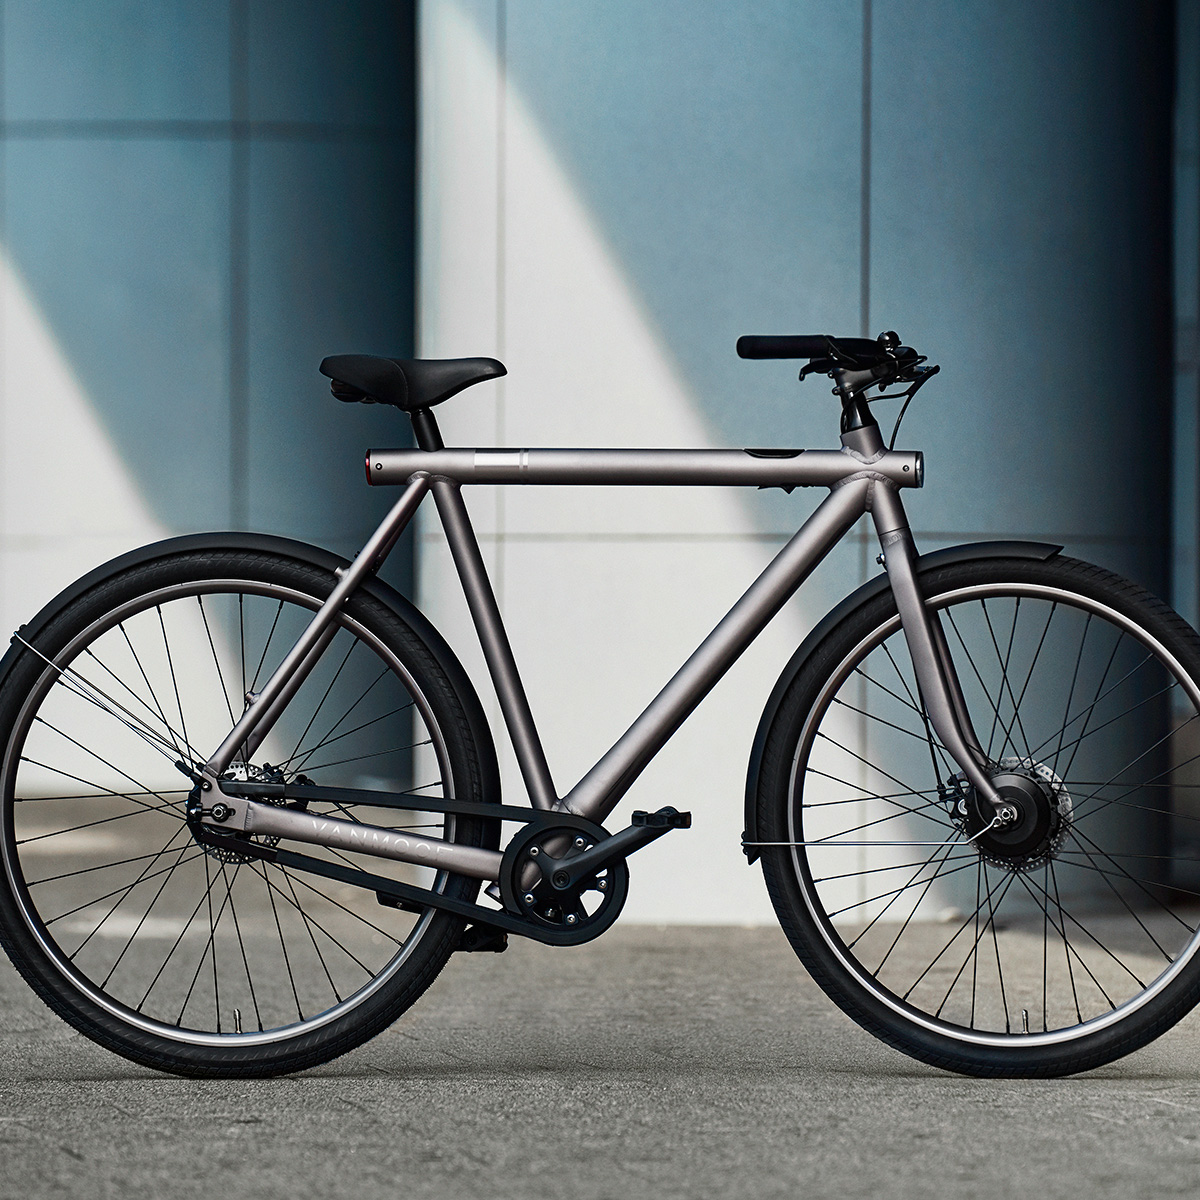 VanMoof New Electrified-S - side